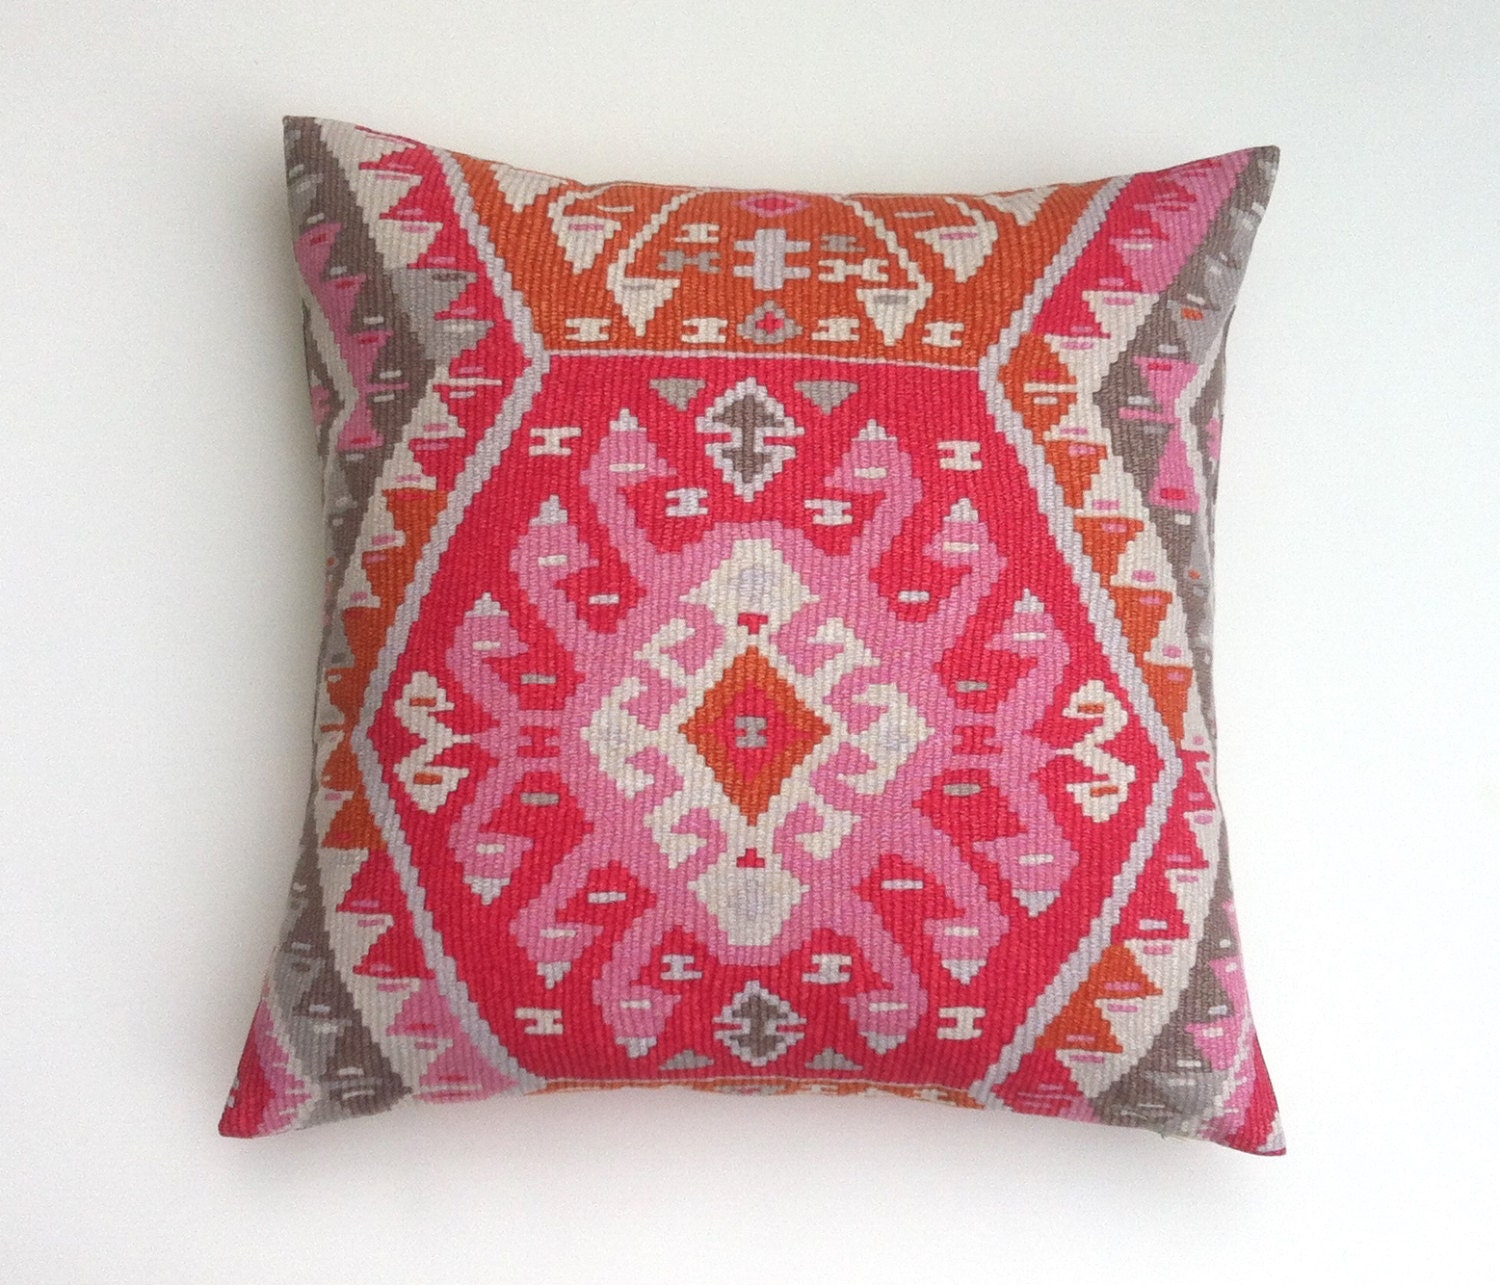 One PRINTED Sunset Pink Orange Decorative Zipper Pillow Cover